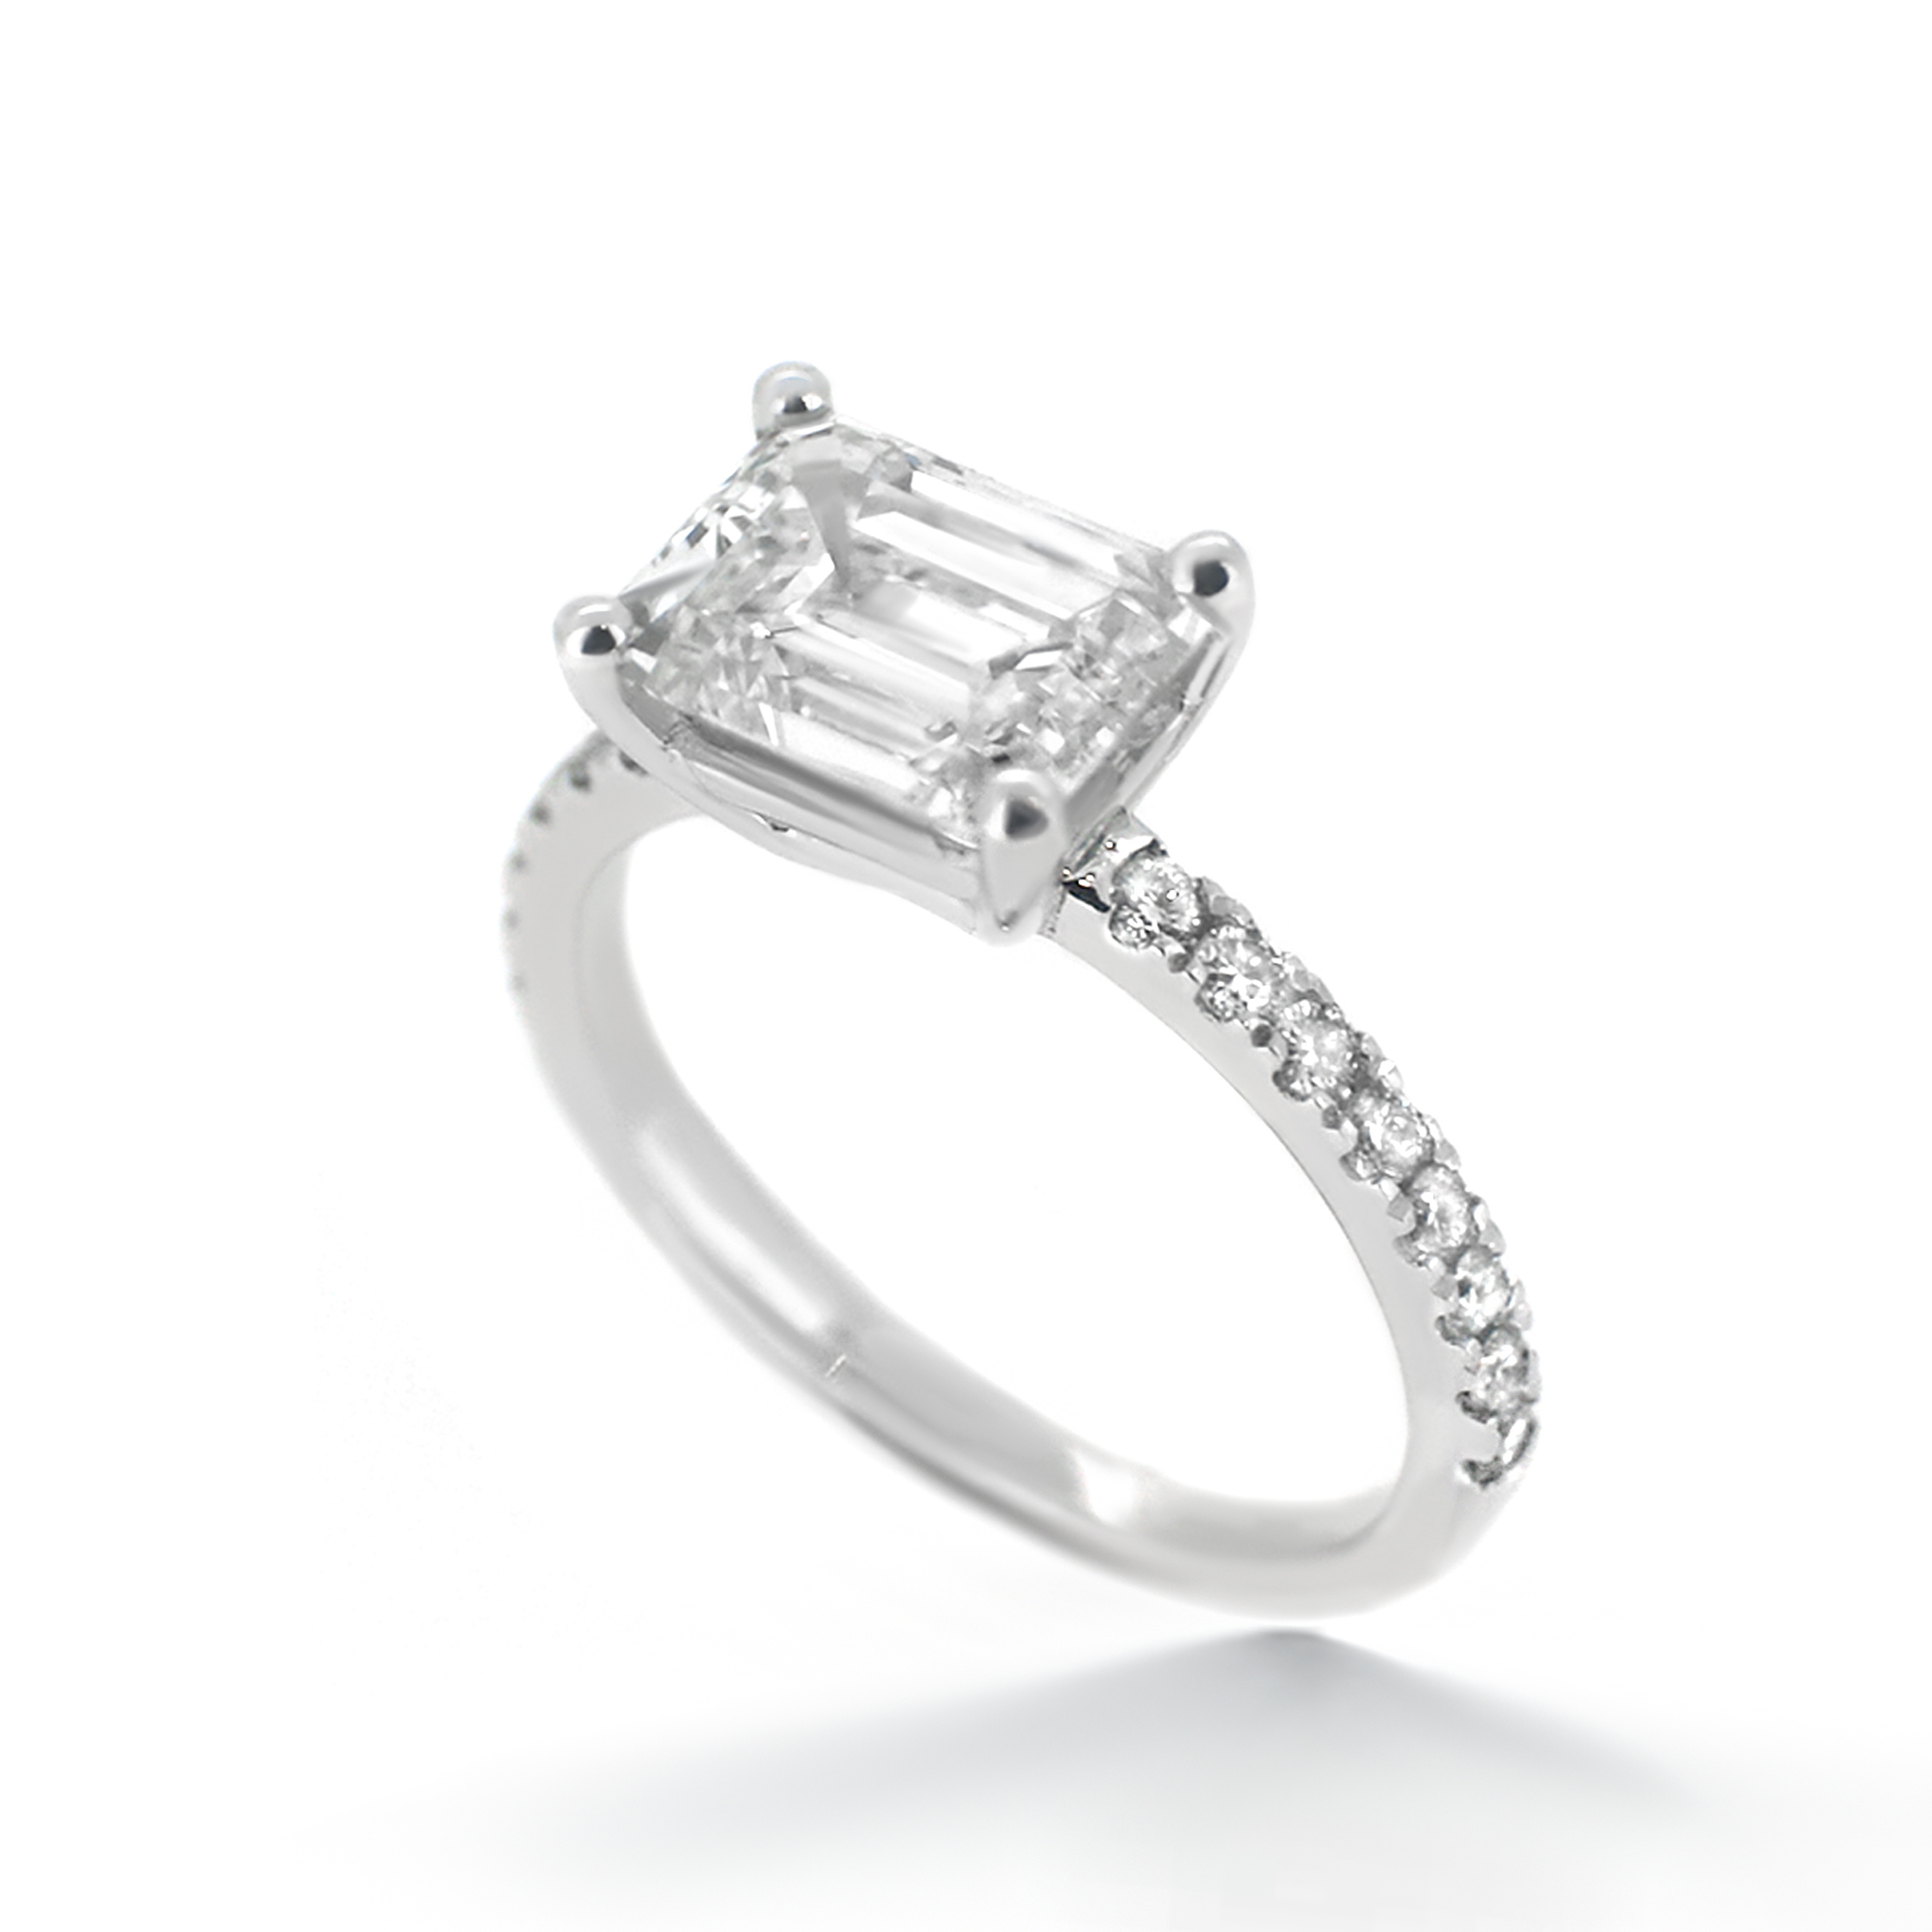 emerald cut diamond engagement ring with pave diamond side-stones- haywards of hong kong